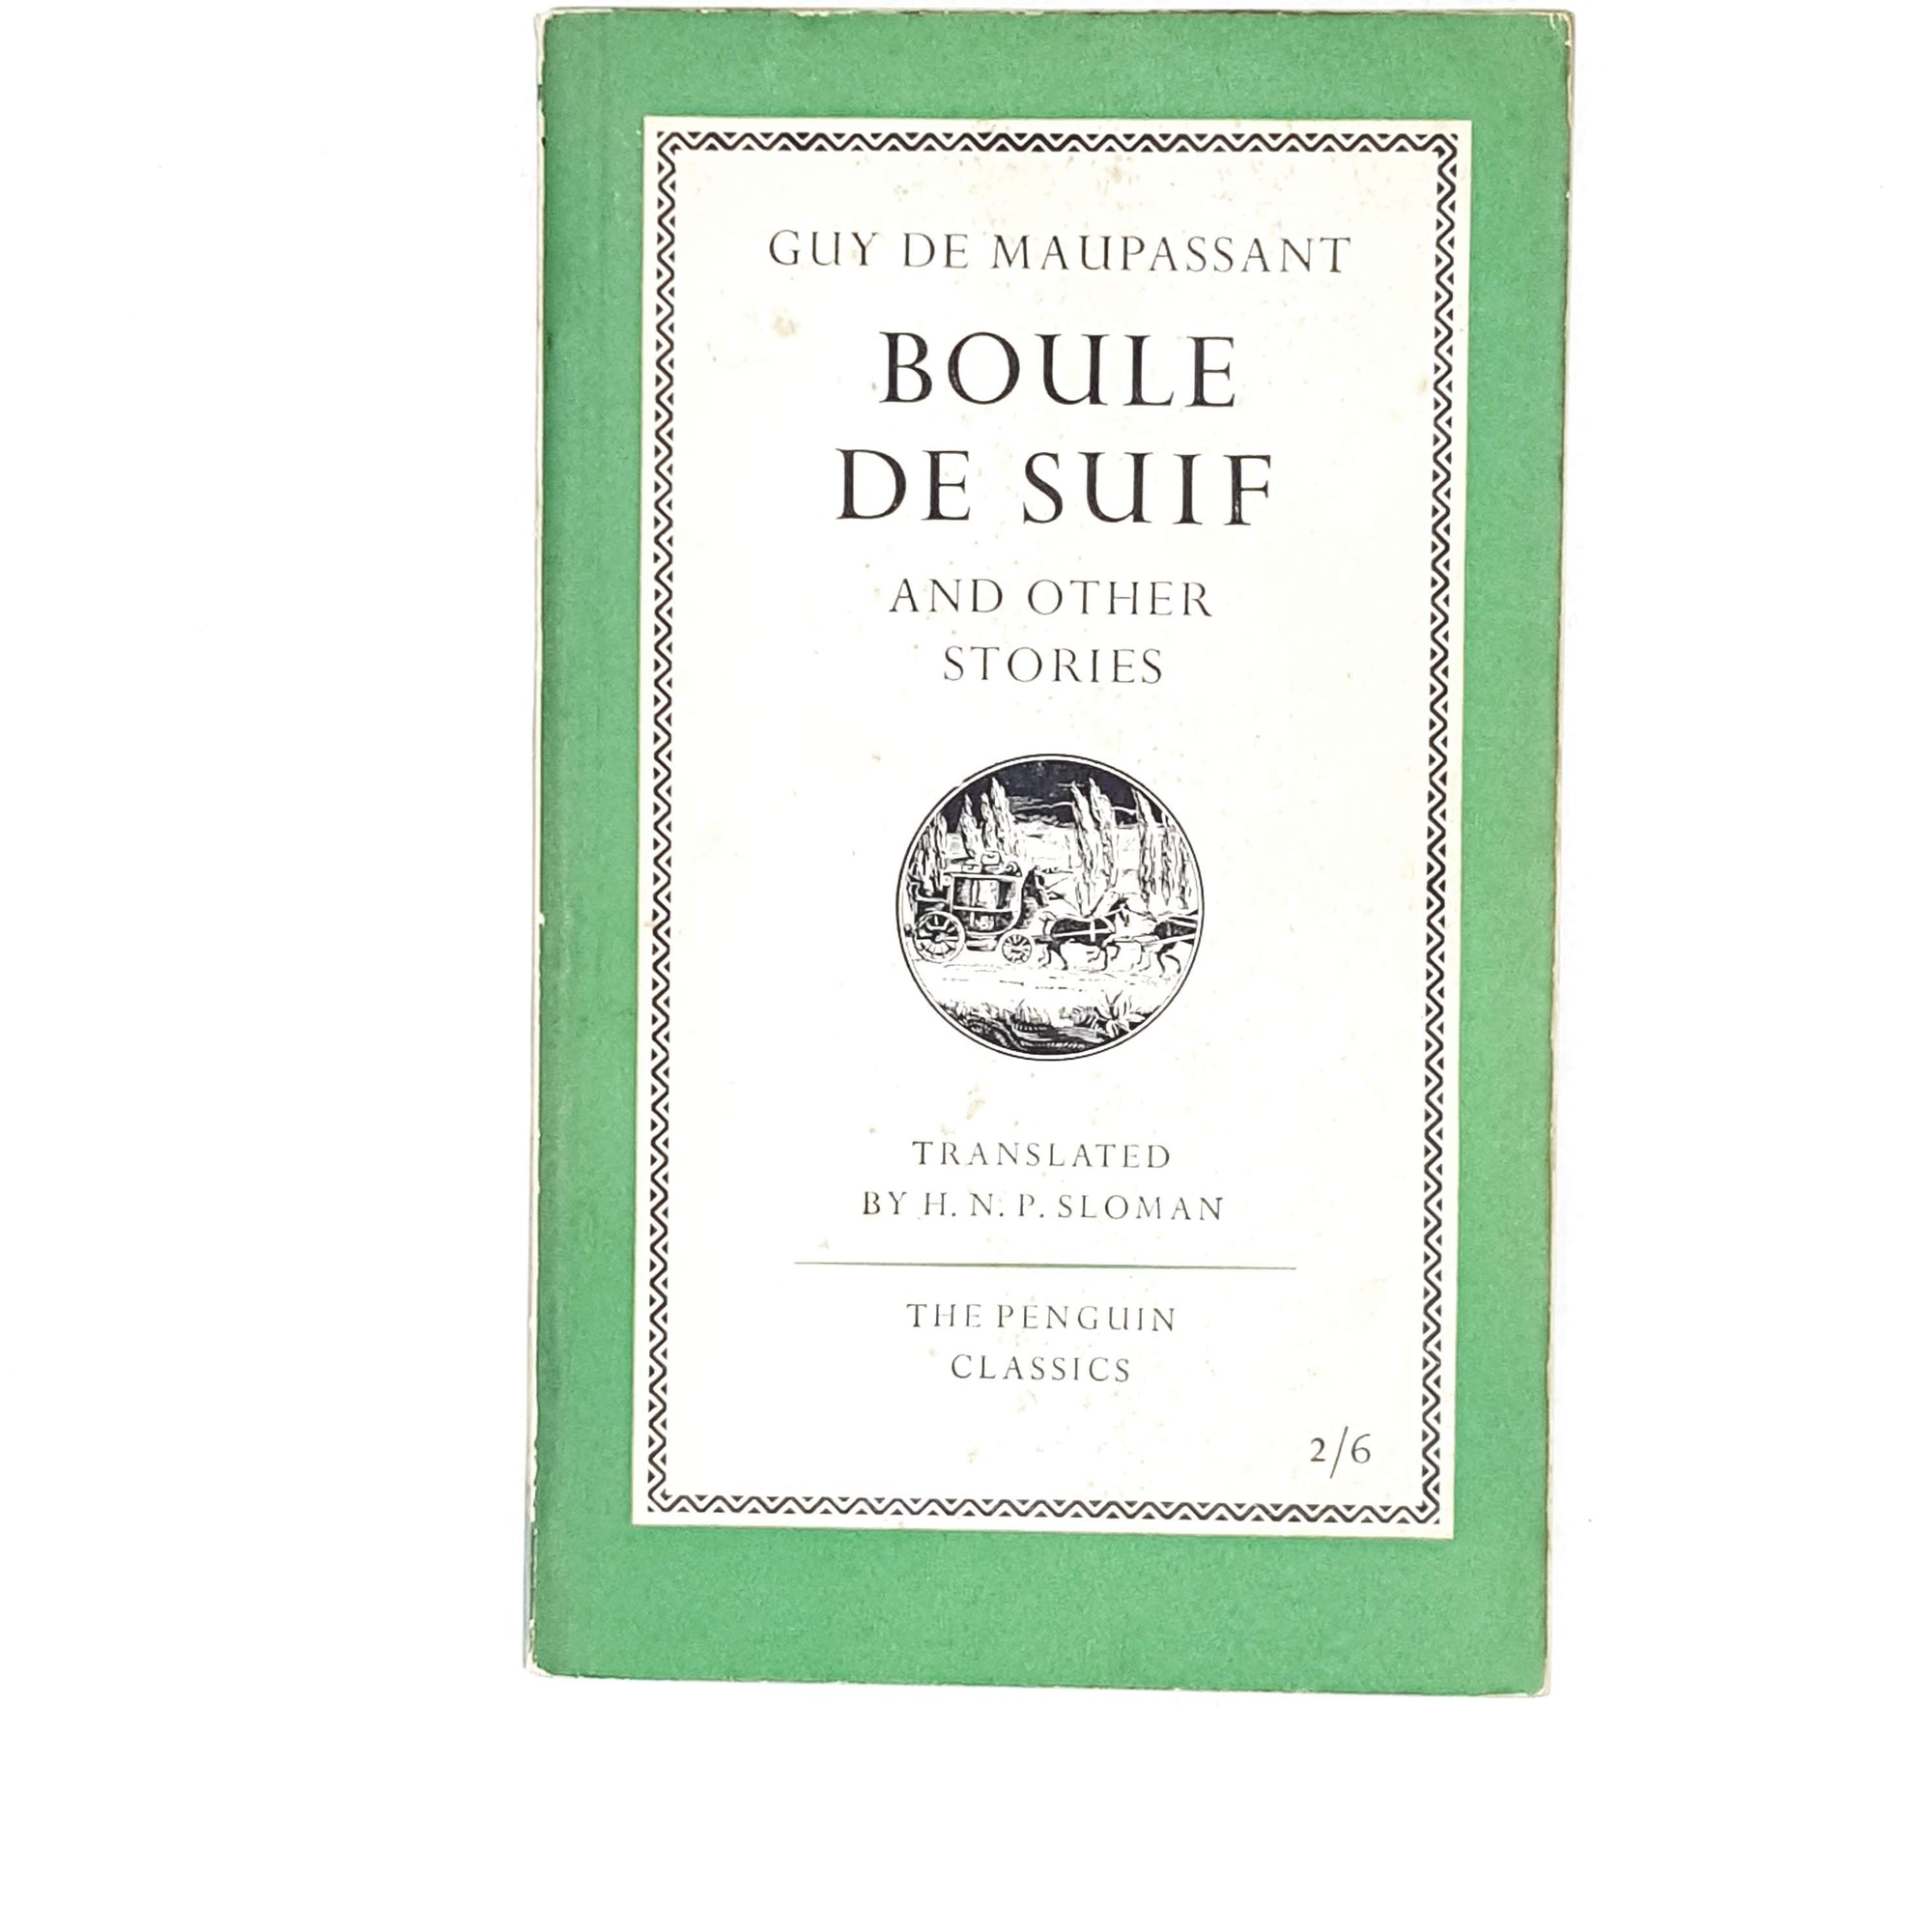 Boule de Suif and Other Stories by Guy de Maupassant 1956